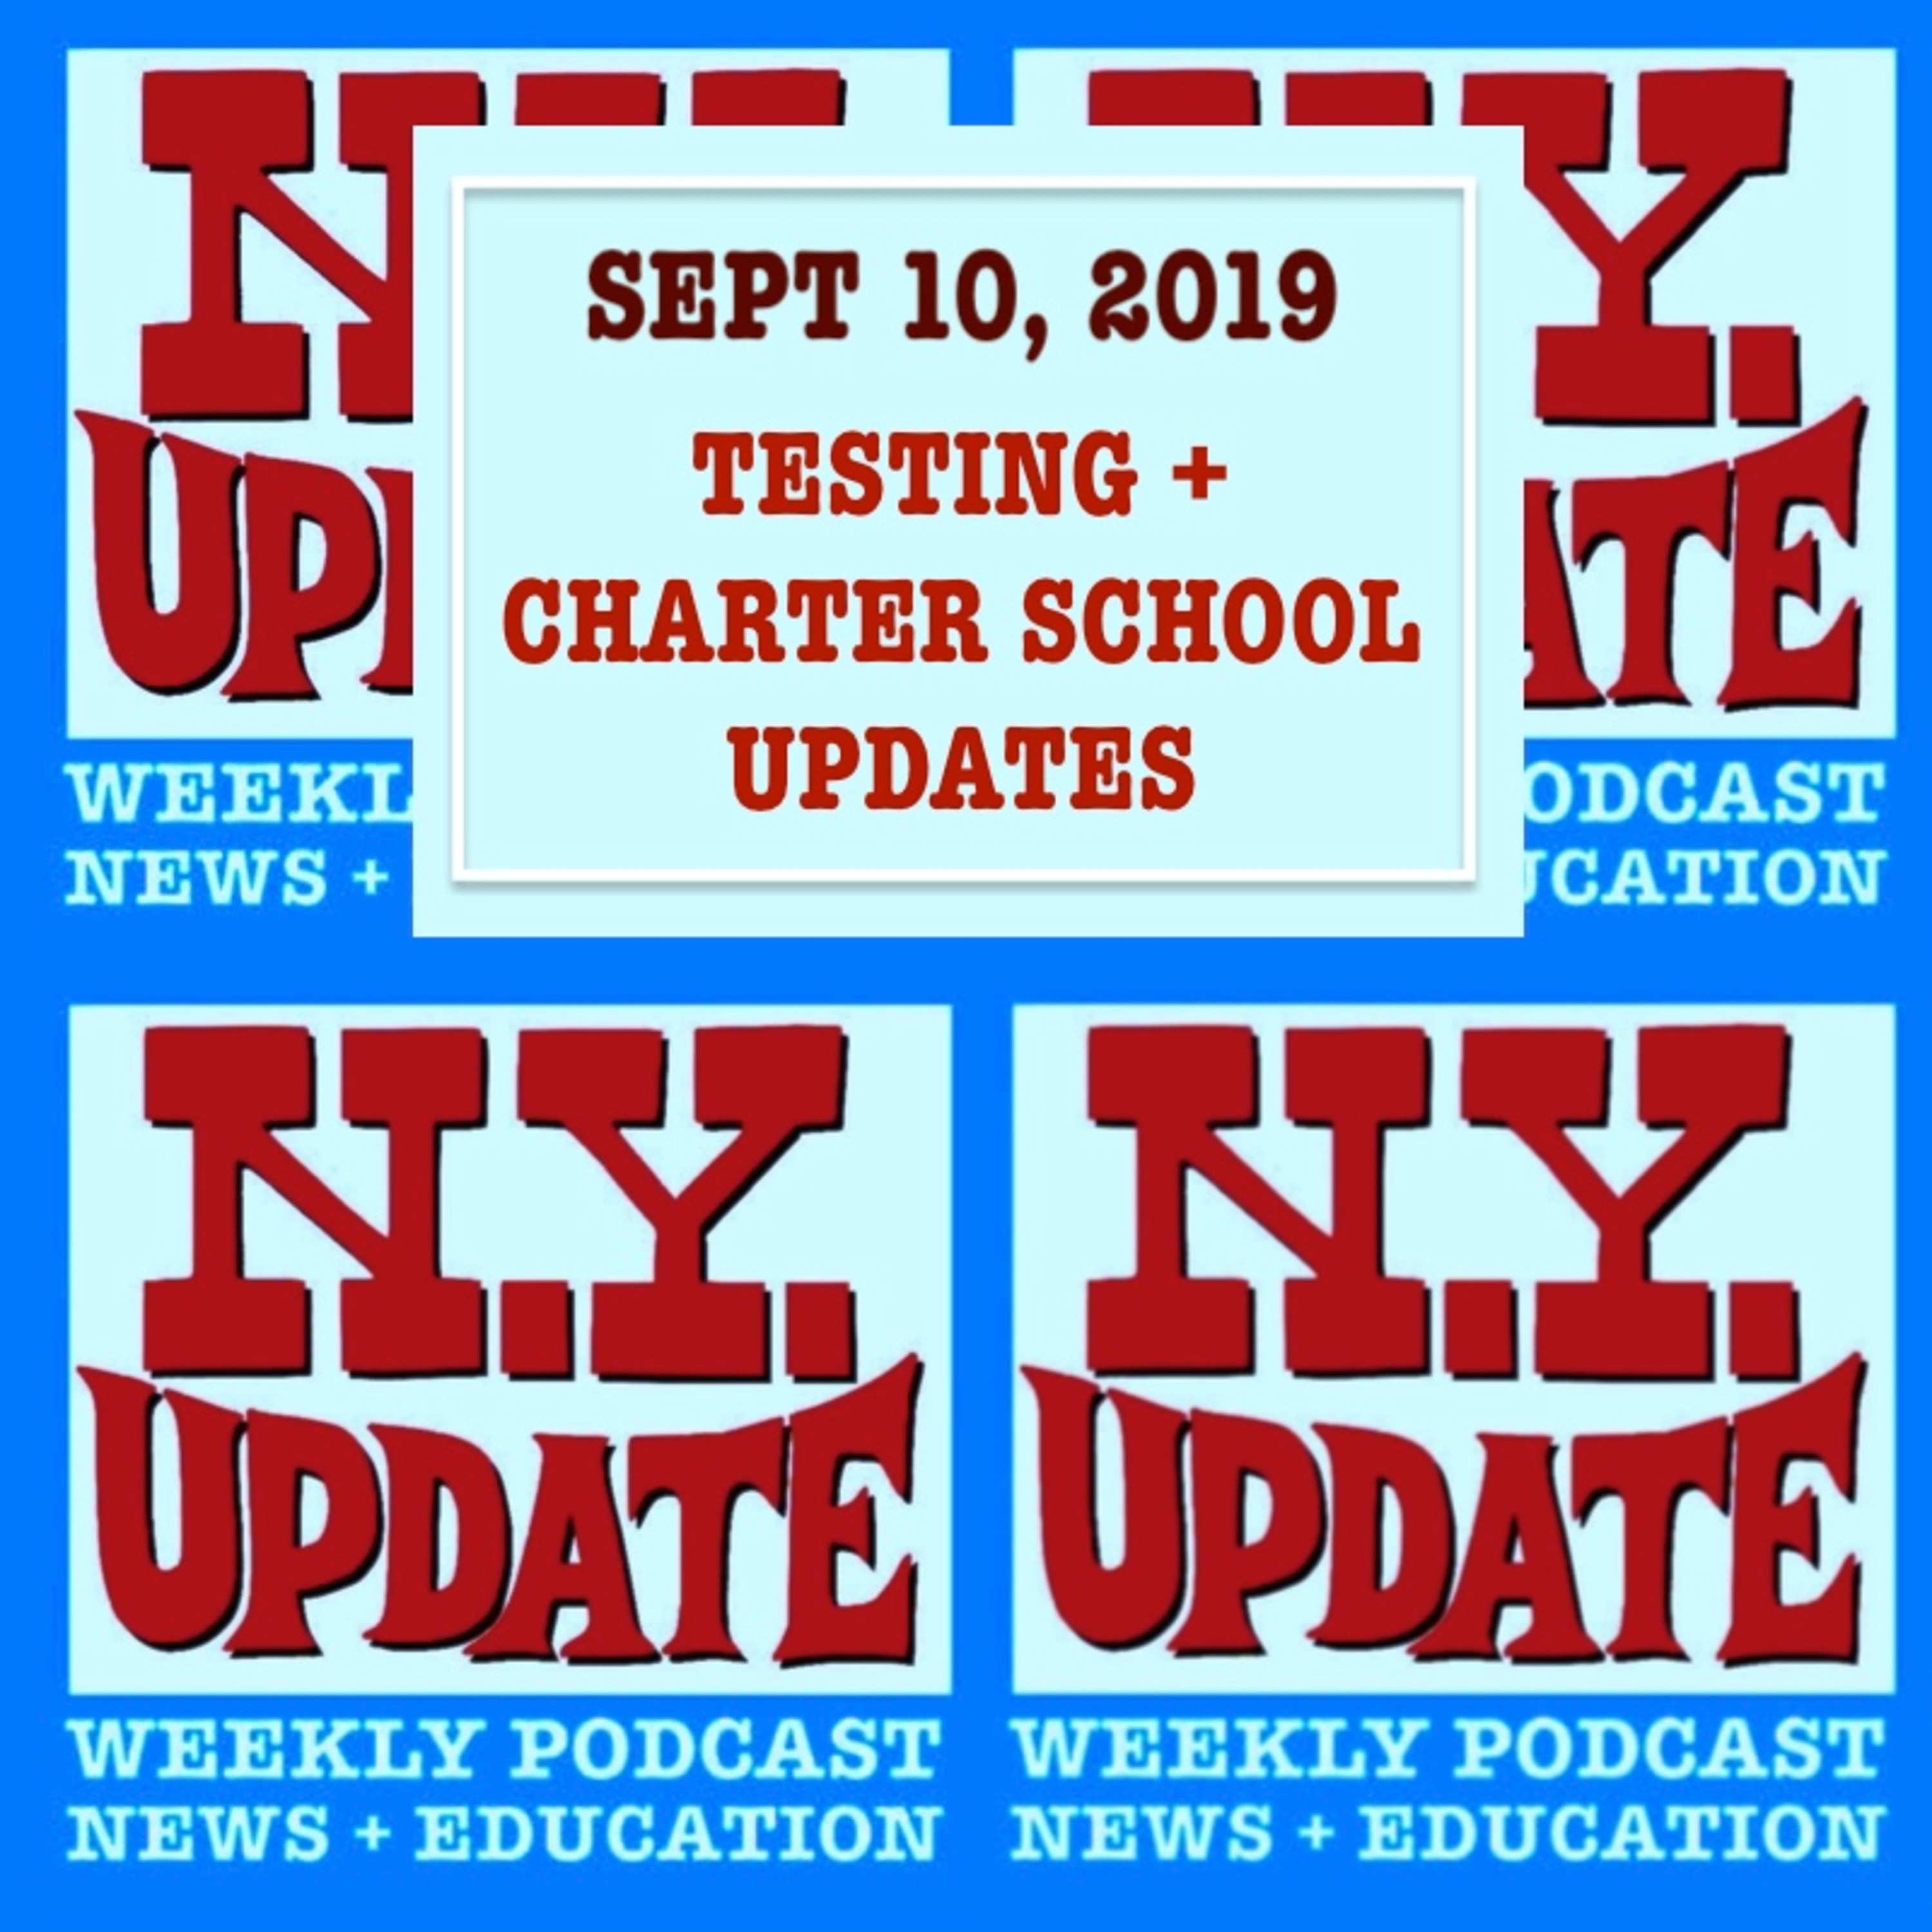 Education news and updates - charters, testing + more. Sept 10, 2019